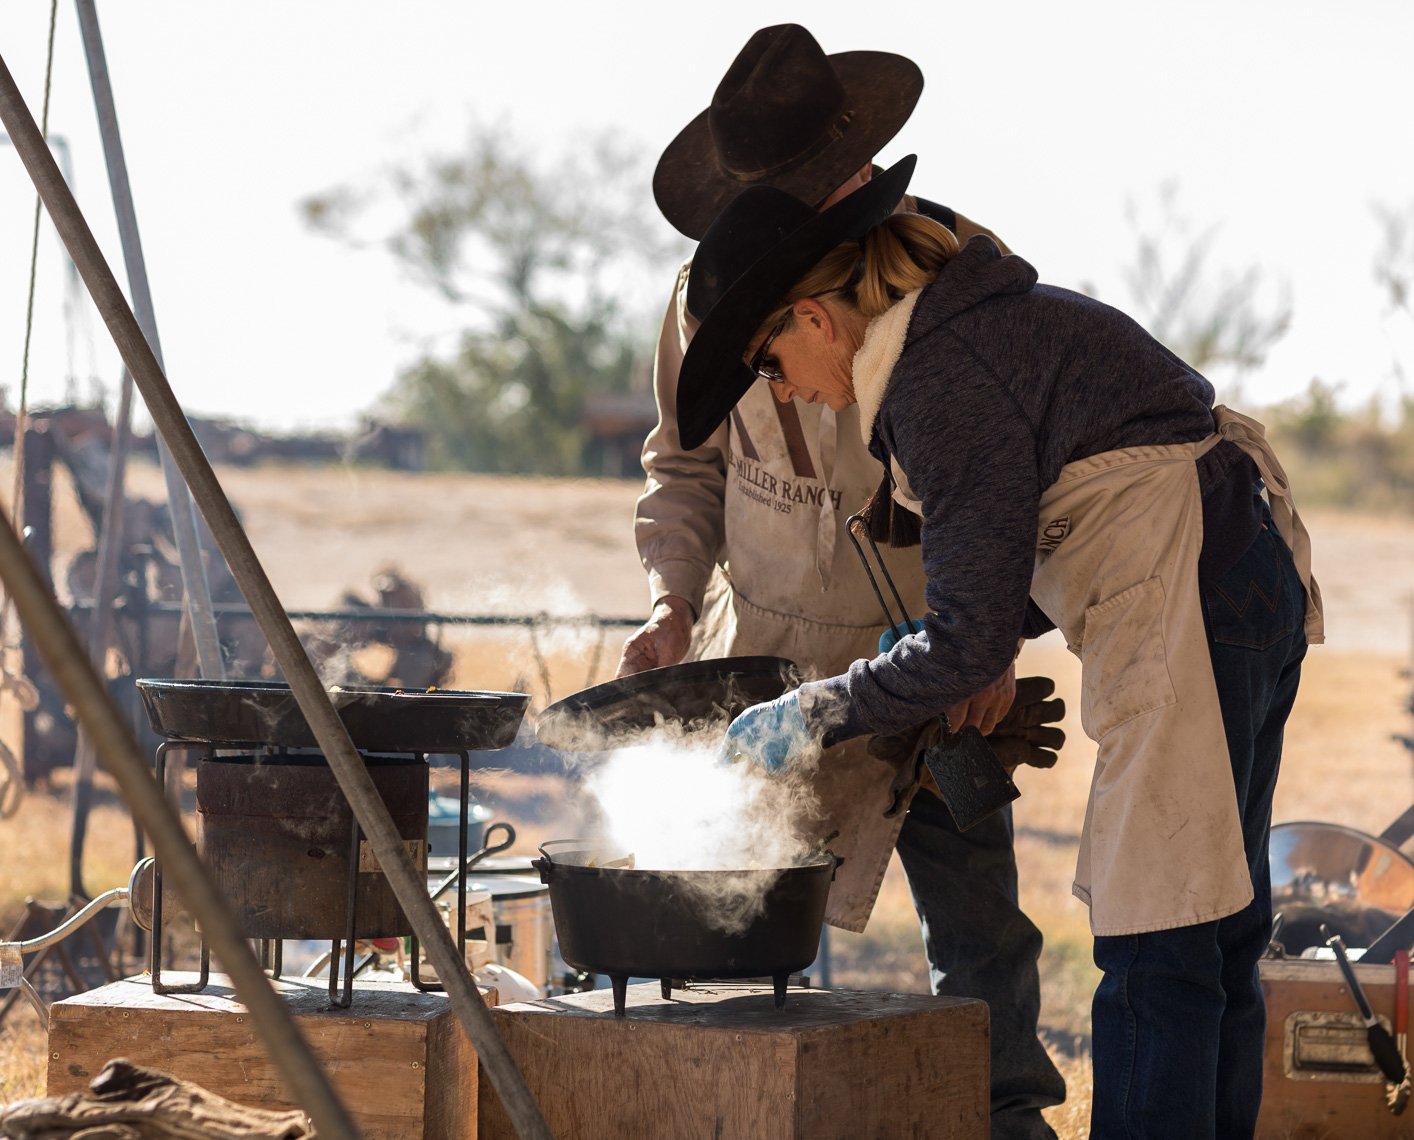 Chuck-Wagon-Food-Cooking-South-Texas-Ranch-Jason-Risner-Photographt-8348